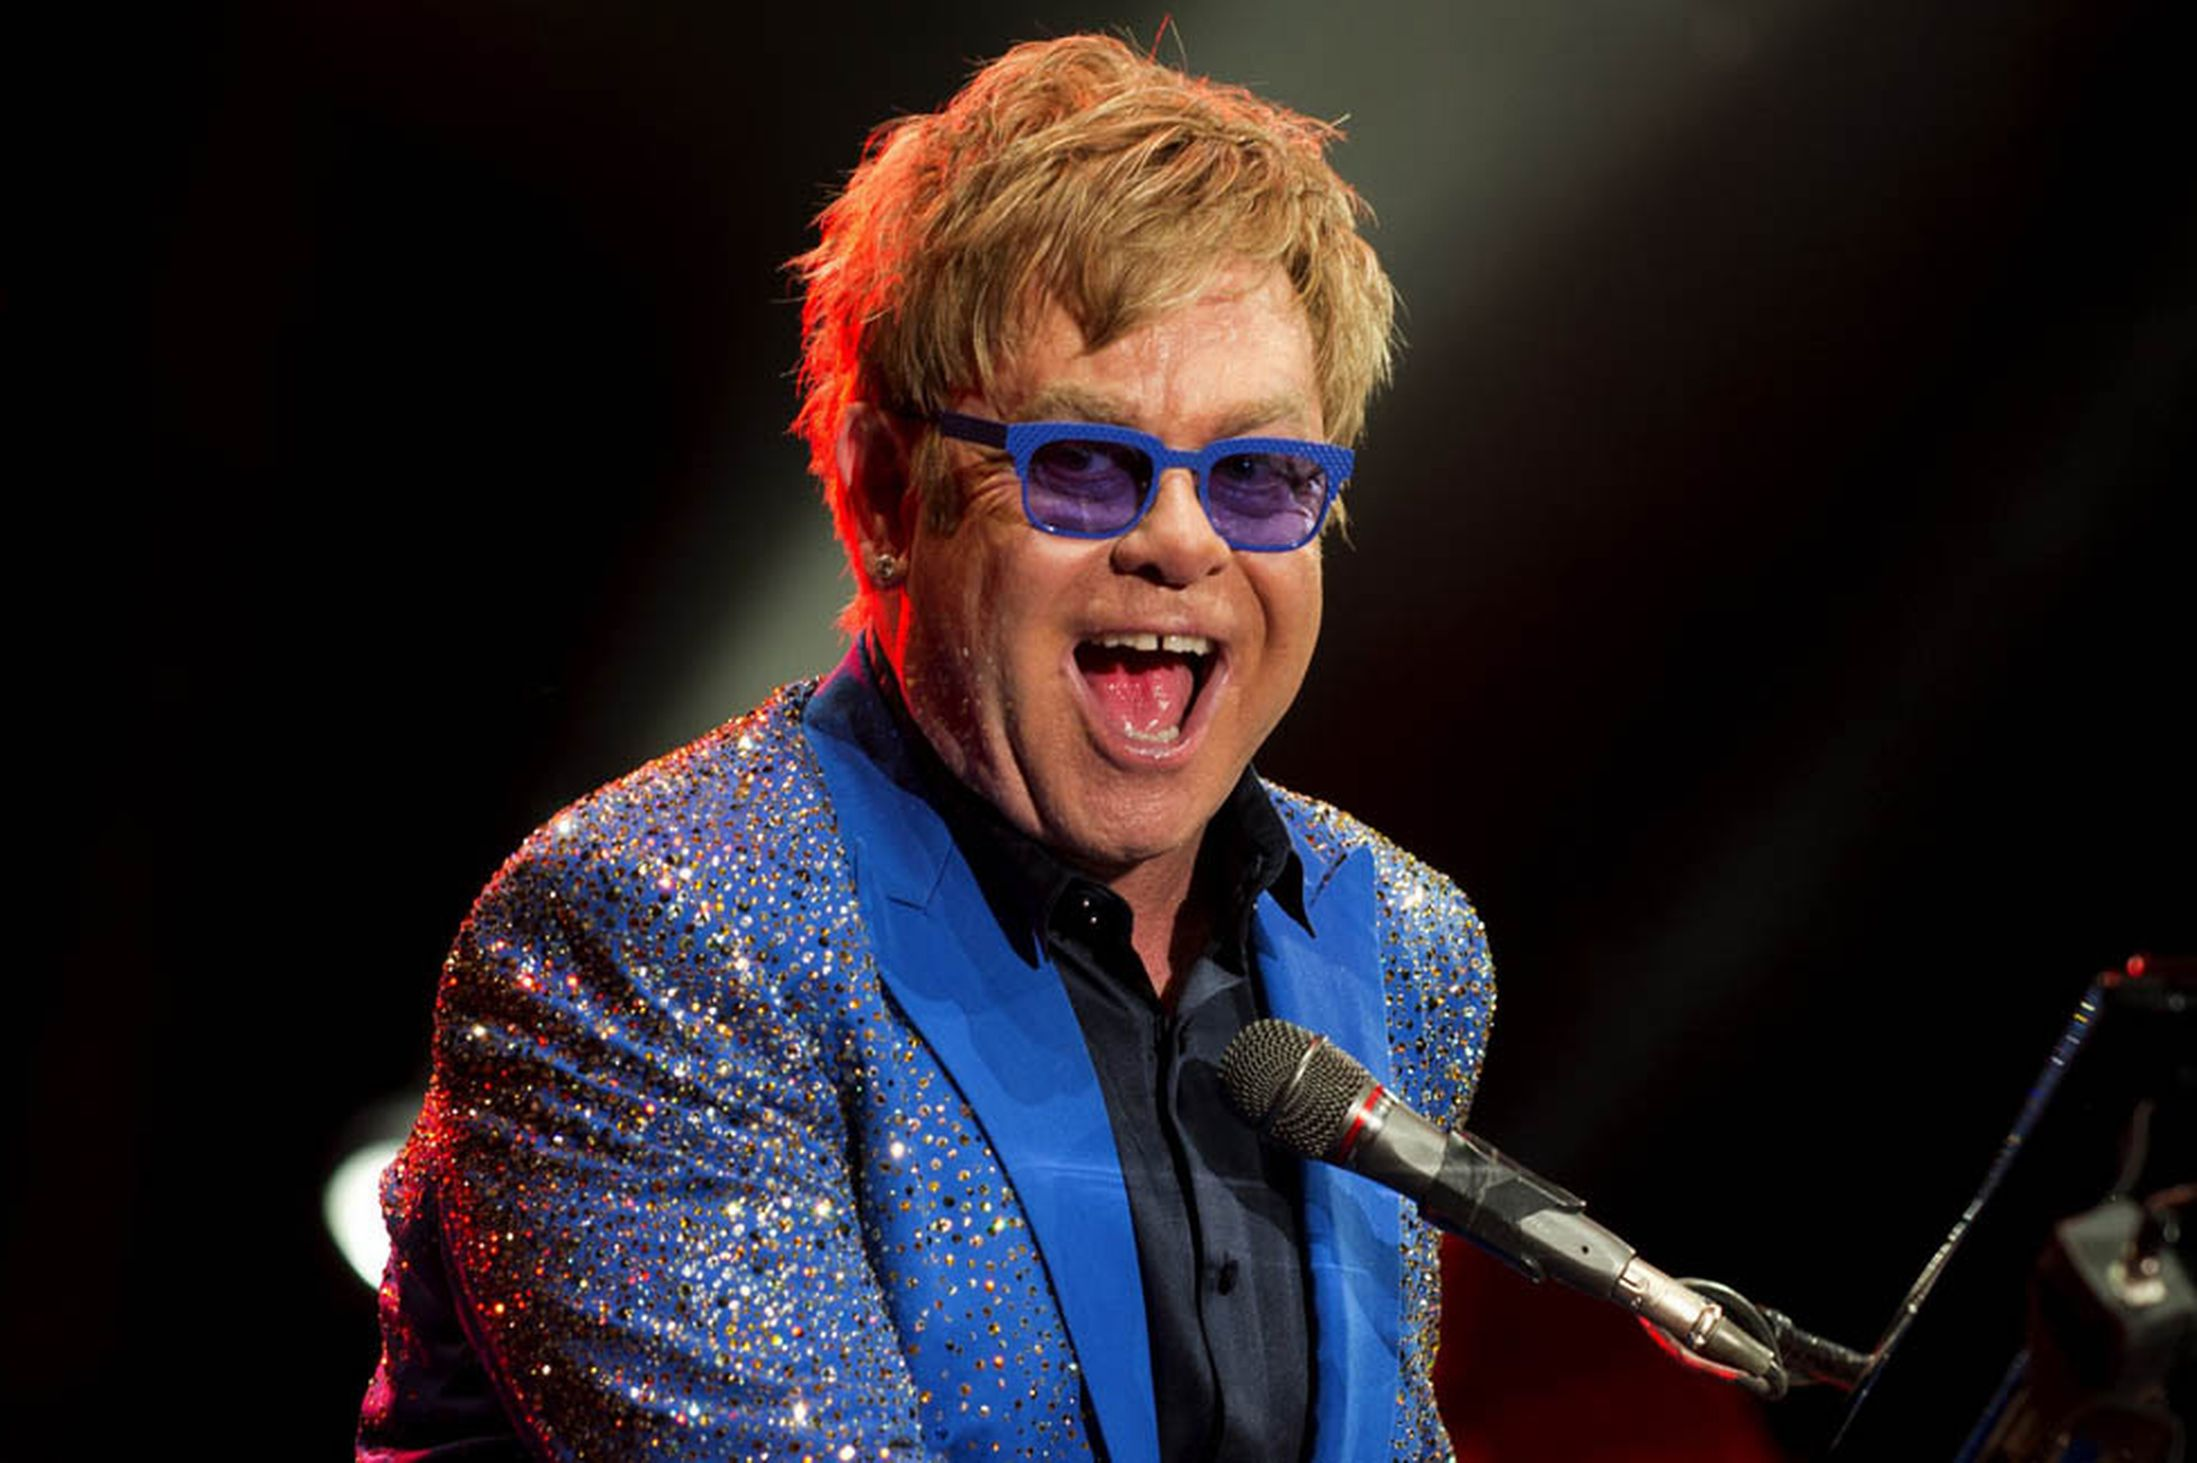 ELTON JOHN TO WRITE AND RELEASE HIS AUTOBIOGRAPHY IN 2019